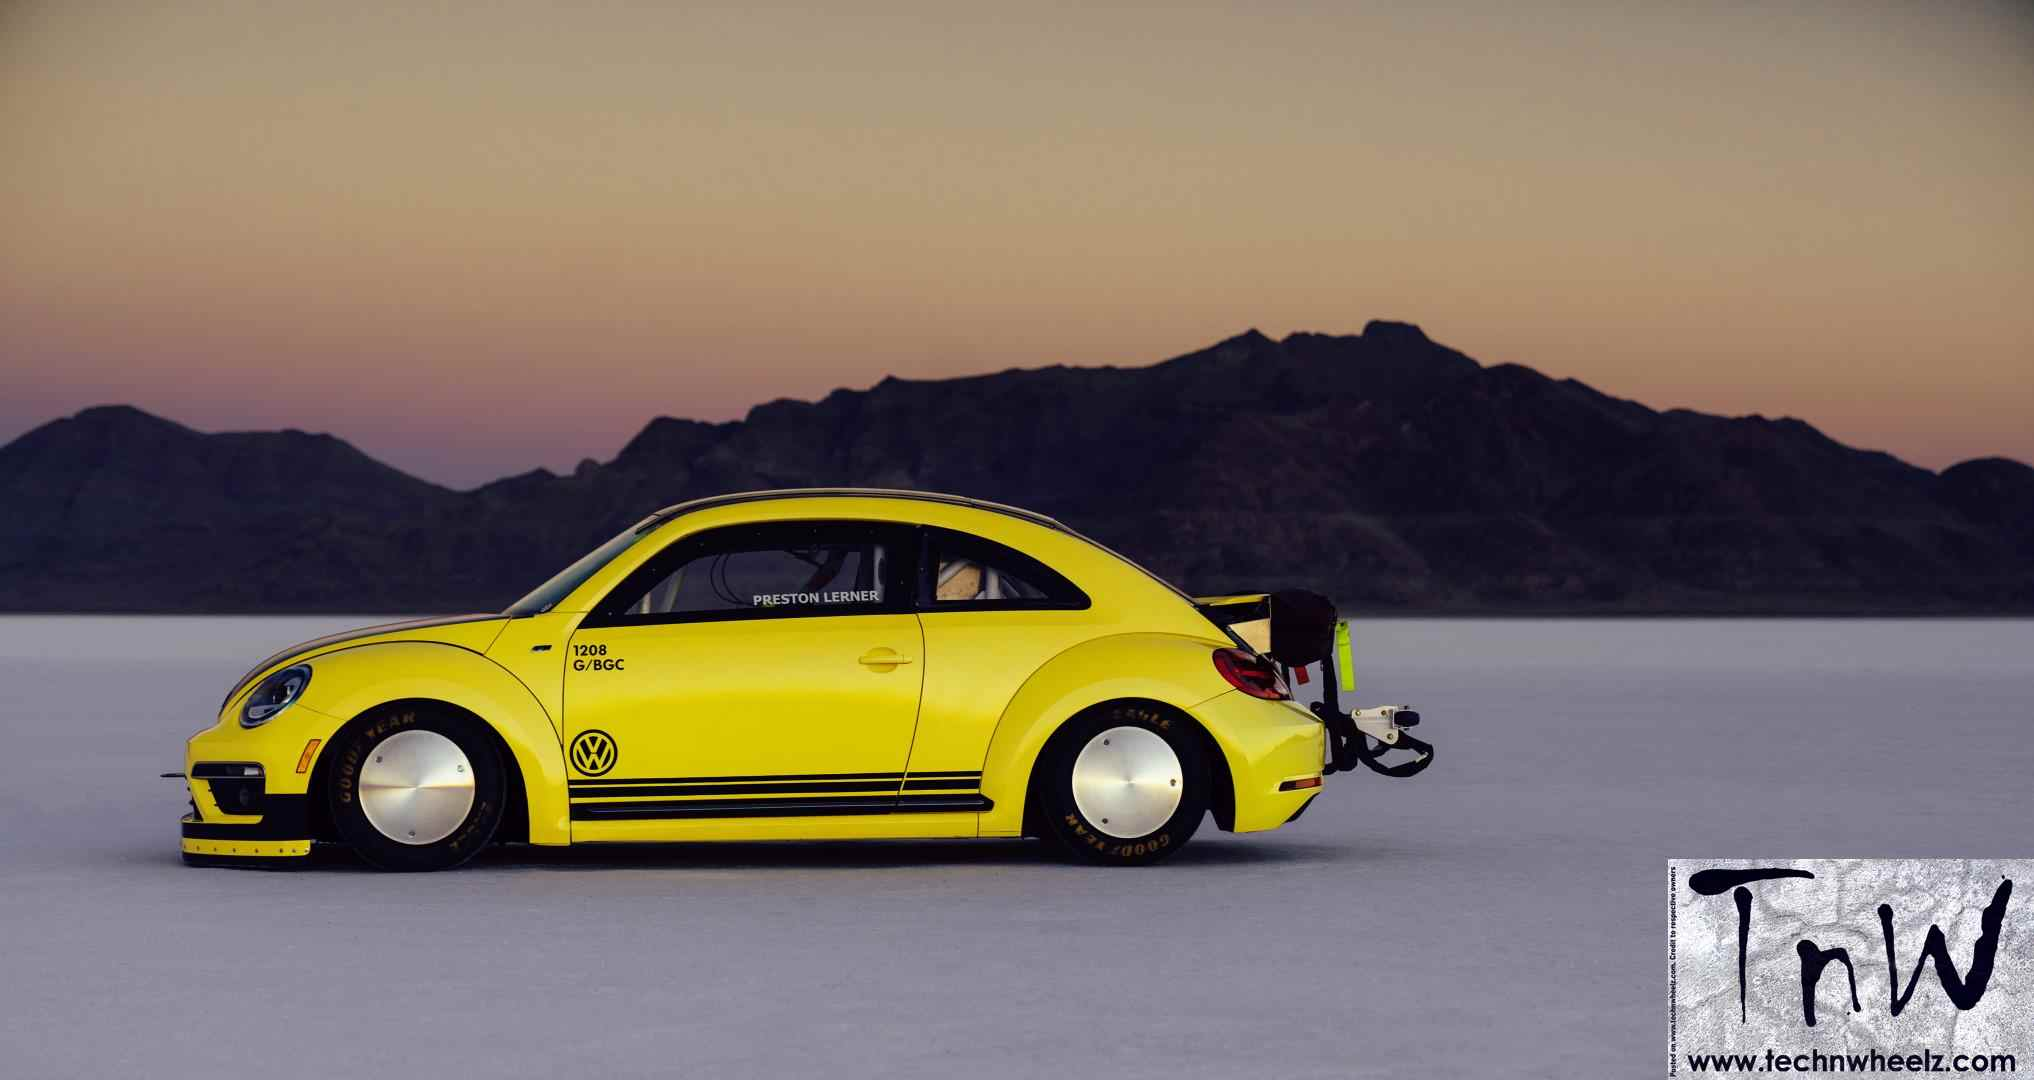 that beetle lsr record utah do event a speed world at lake technwheelz hits volkswagen posts in featured sets of new bonneville can